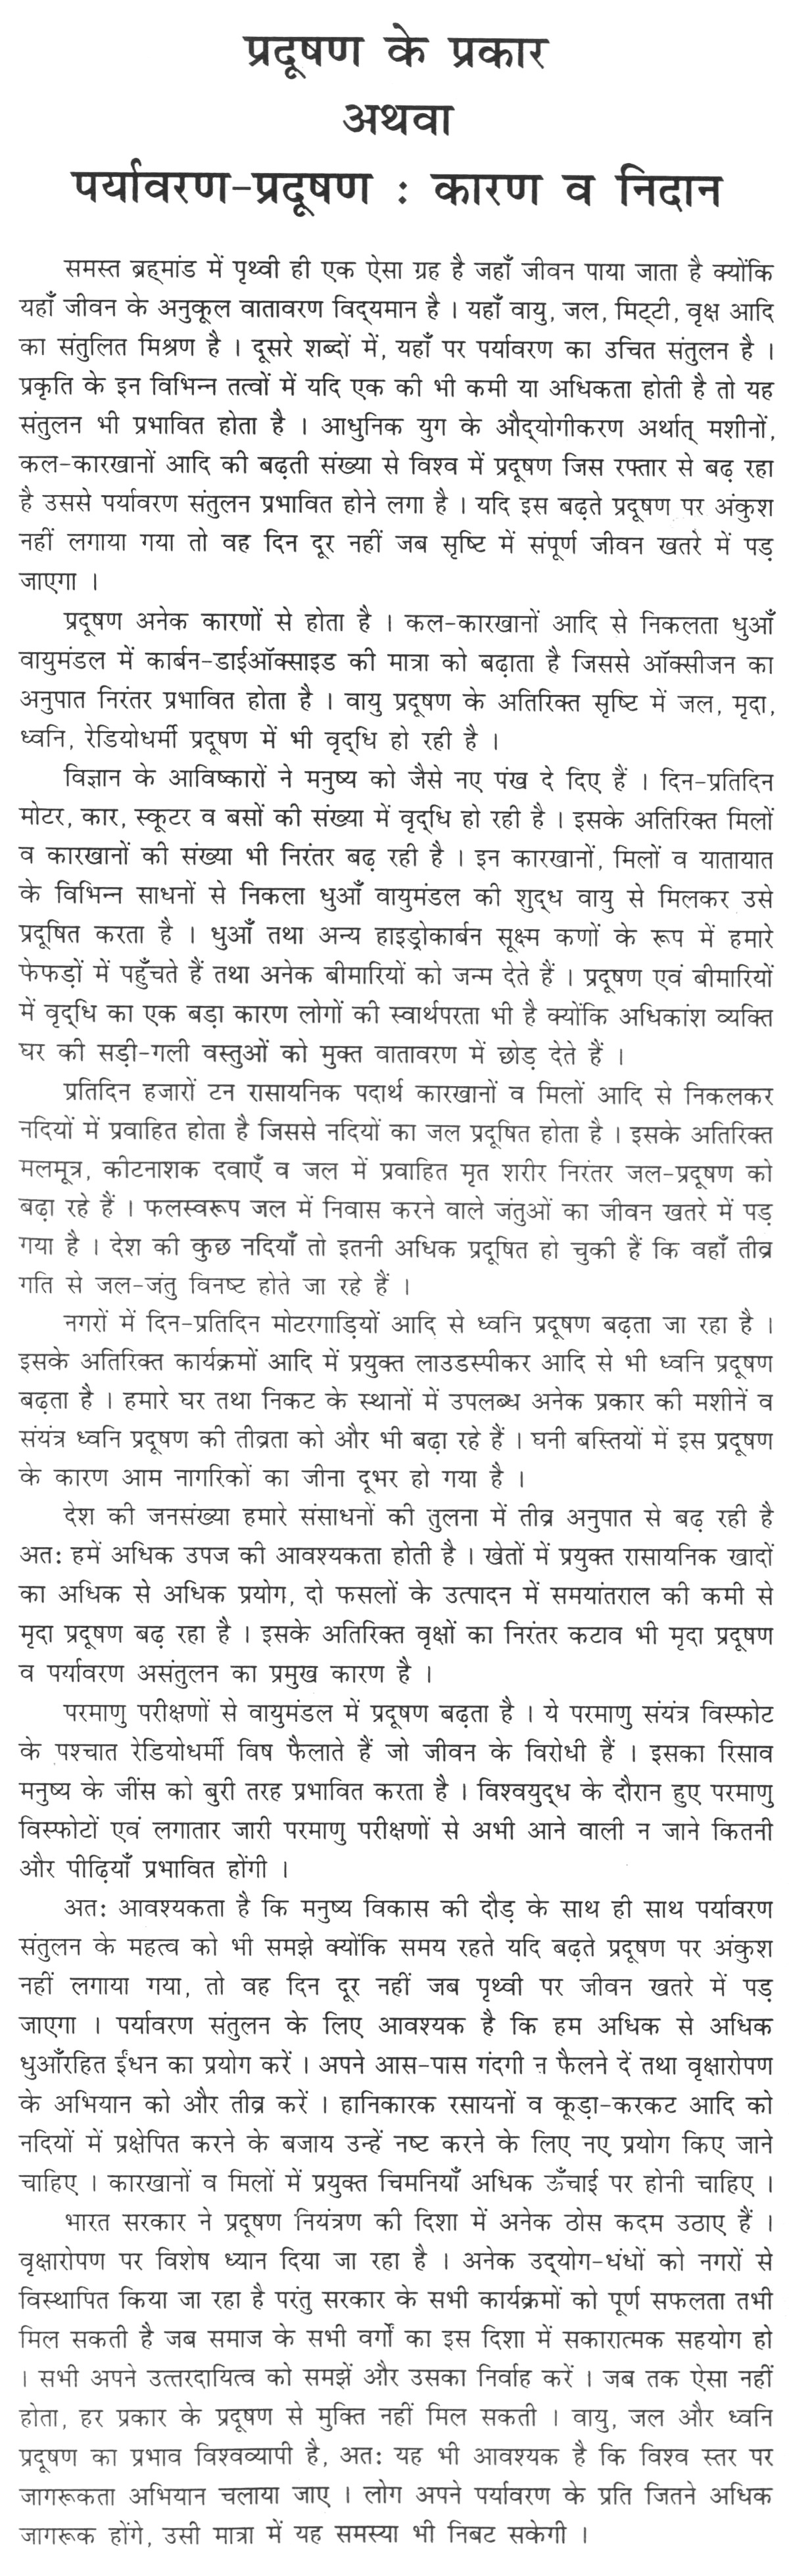 014 Good Habits Essay In Hindi Exceptional Habit Wikipedia Eating Full